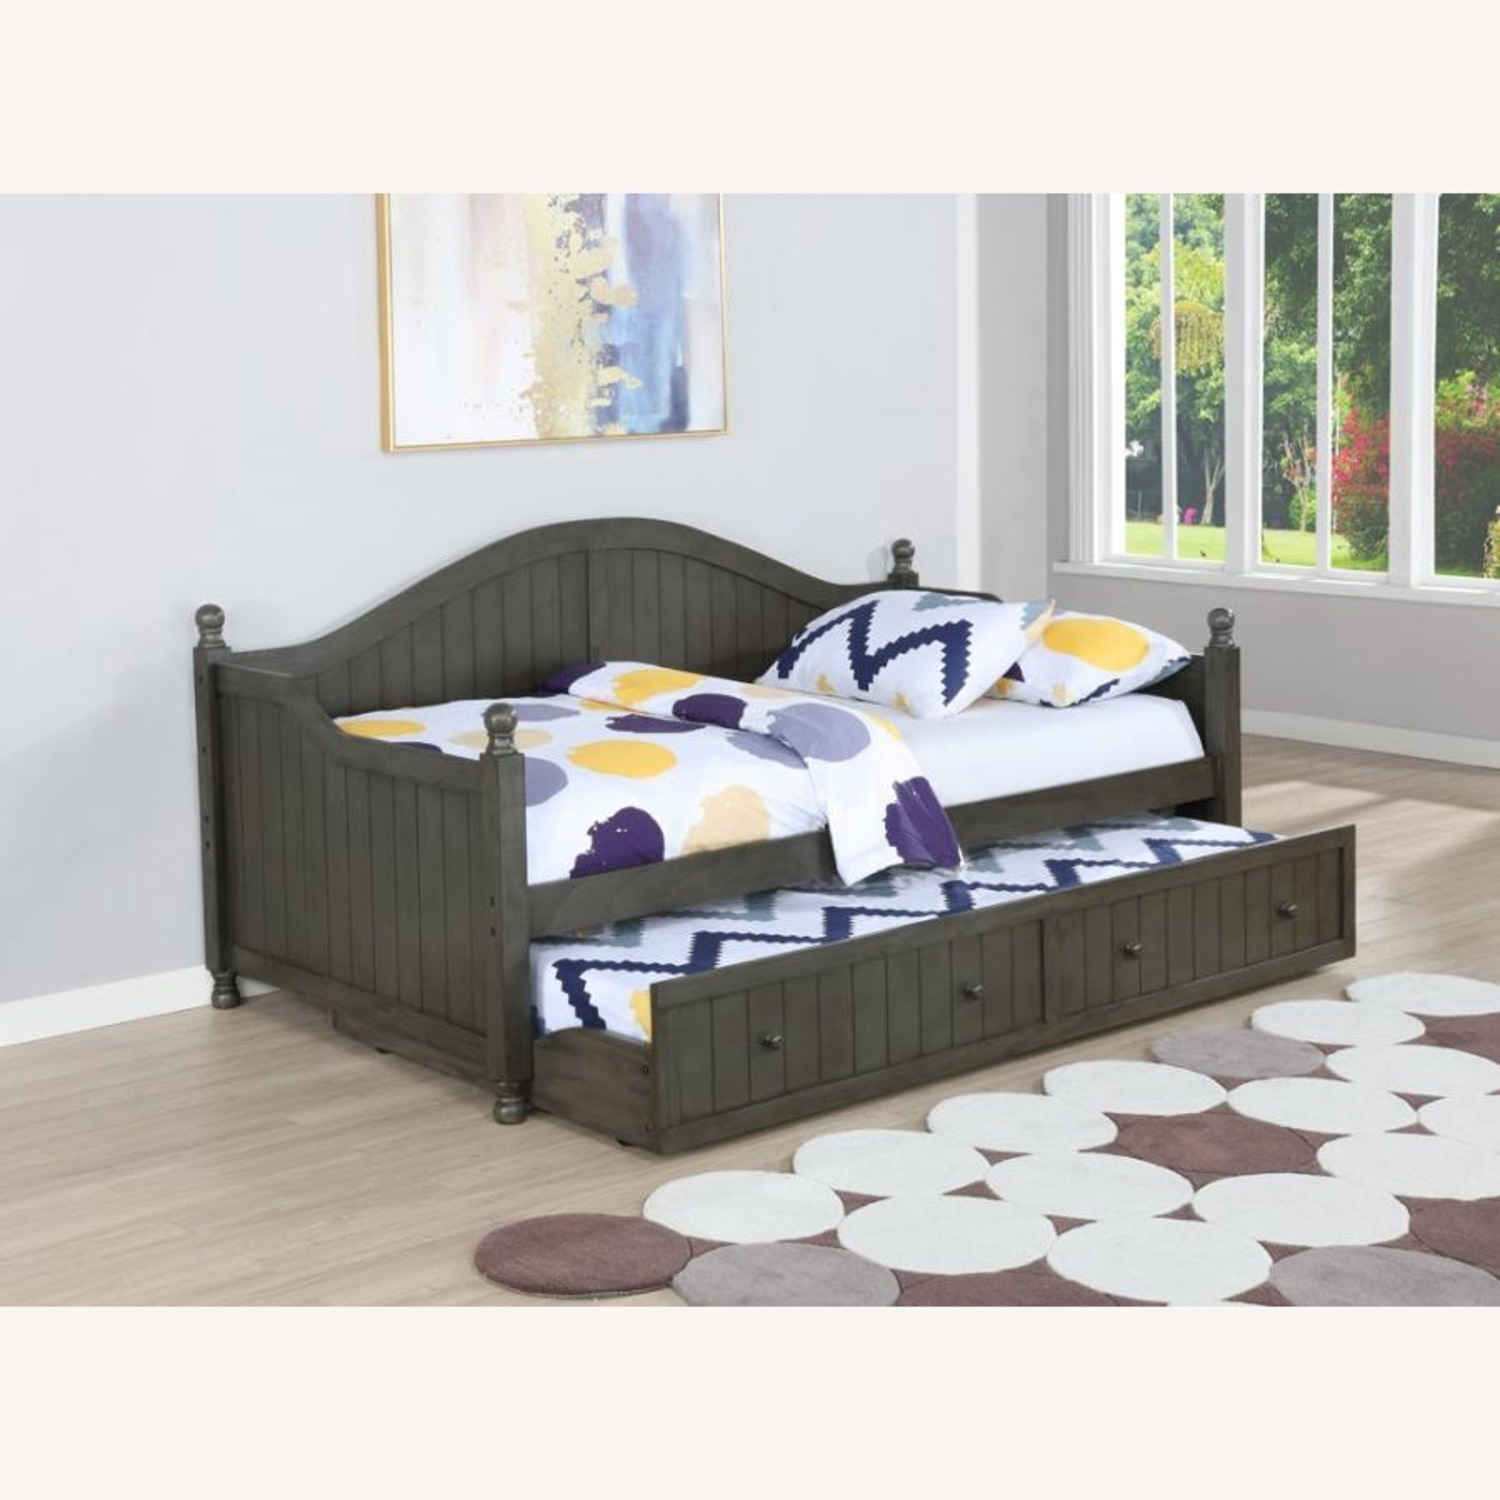 Twin Daybed In Warm Grey Finish W/ Trundle - image-2